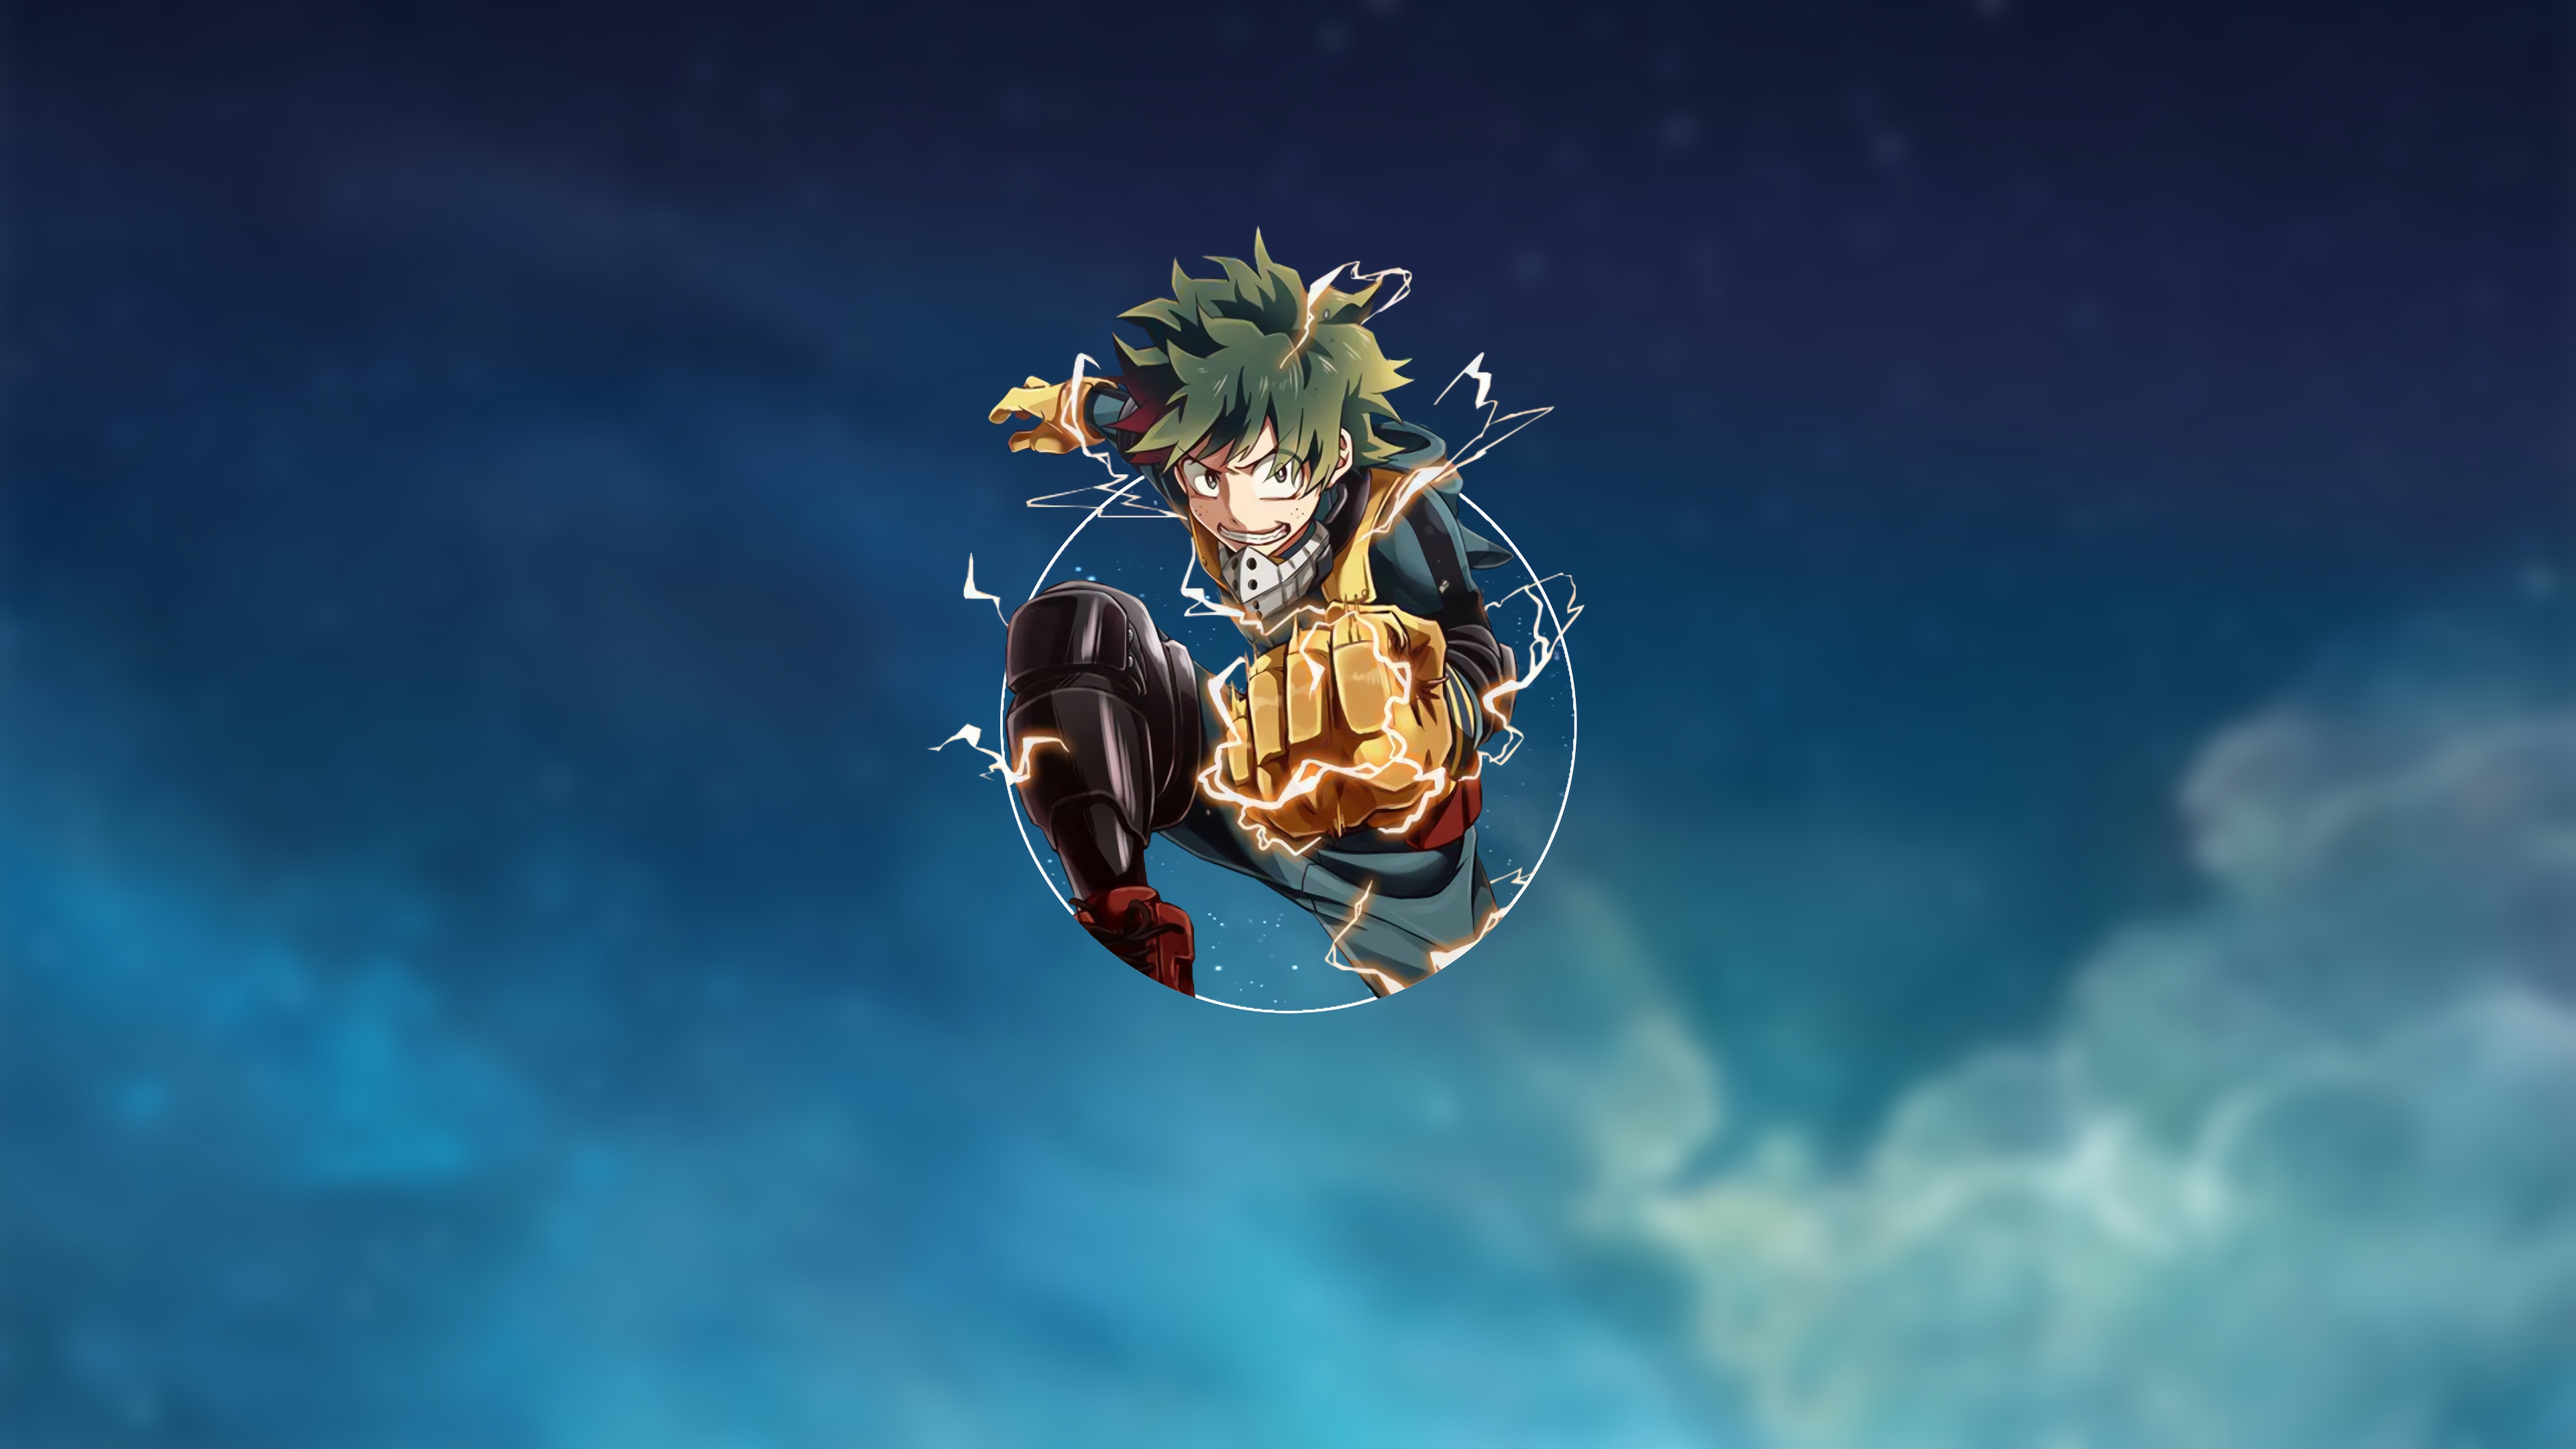 Boku no Hero Midoriya background 4